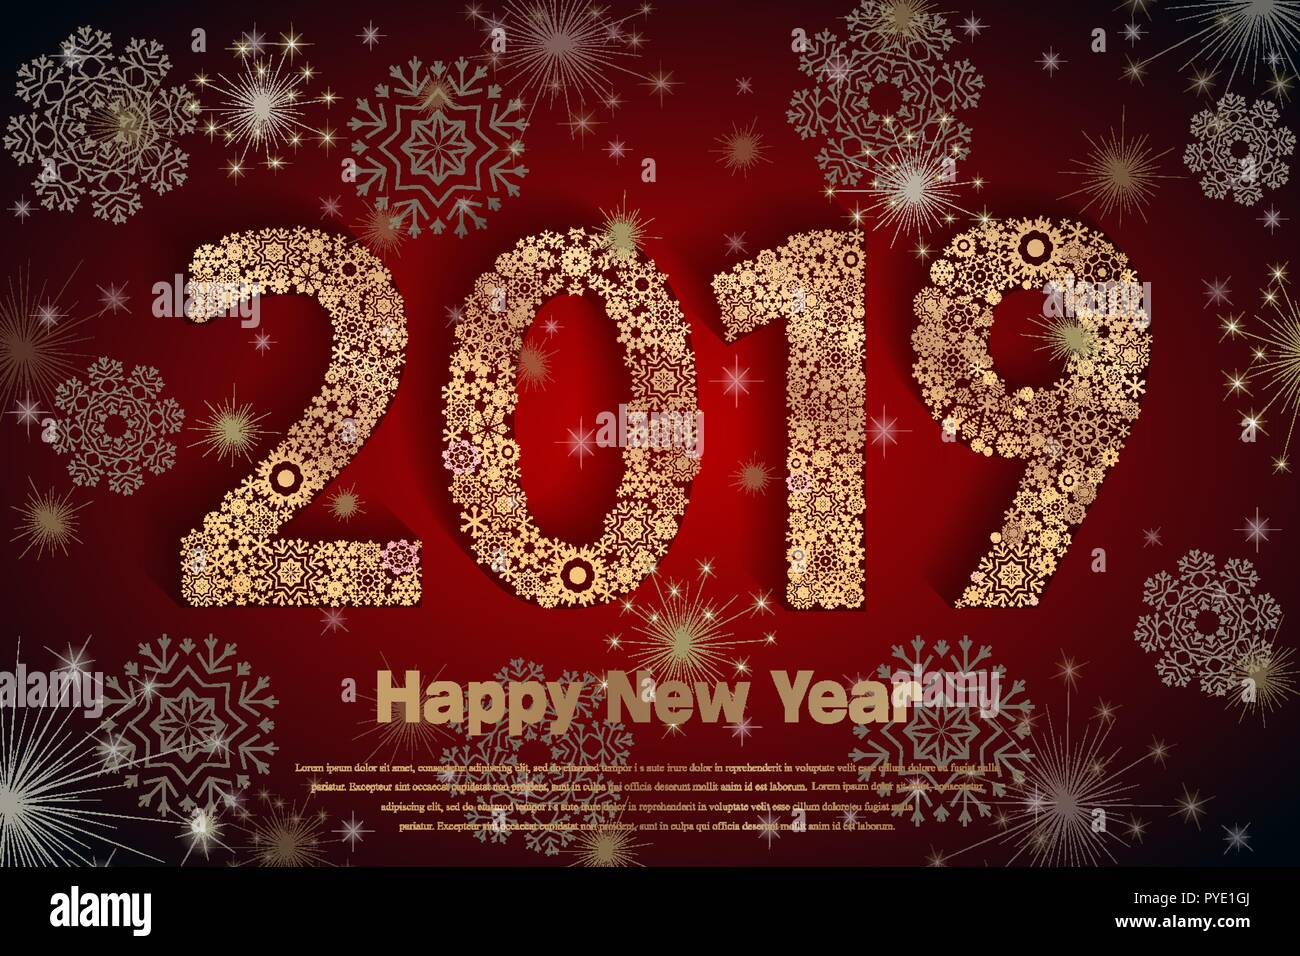 vector 2018 happy new year holiday banner with sparkling glitter golden textured snowflake and figures seasonal holidays background new year greeting card